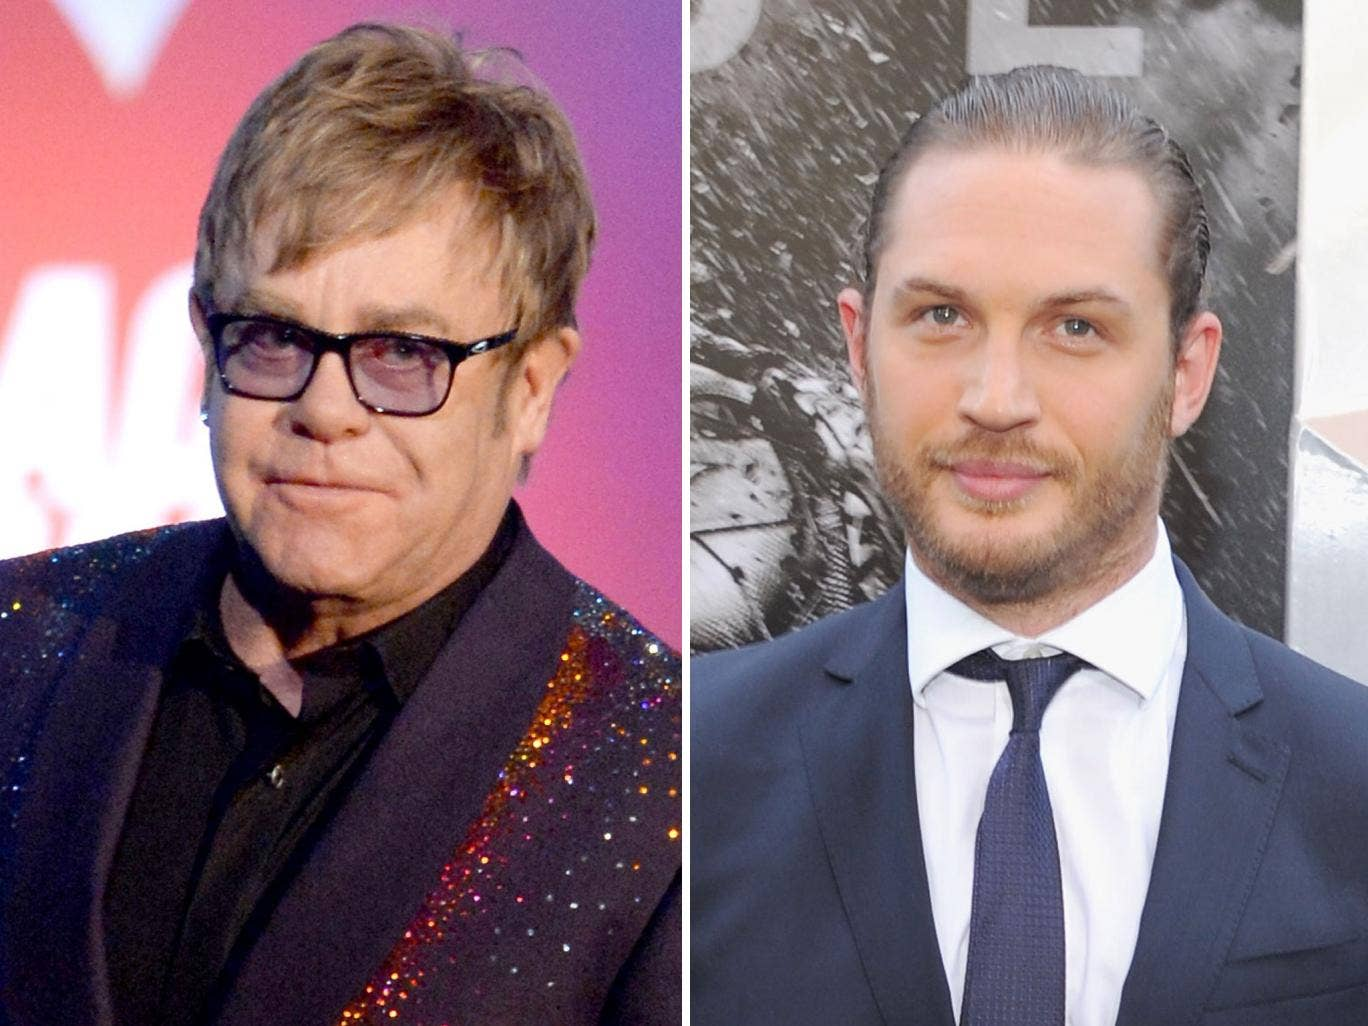 Reports suggest that rugged movie tough-guy Tom Hardy is a top contender to play Sir Elton in Rocketman